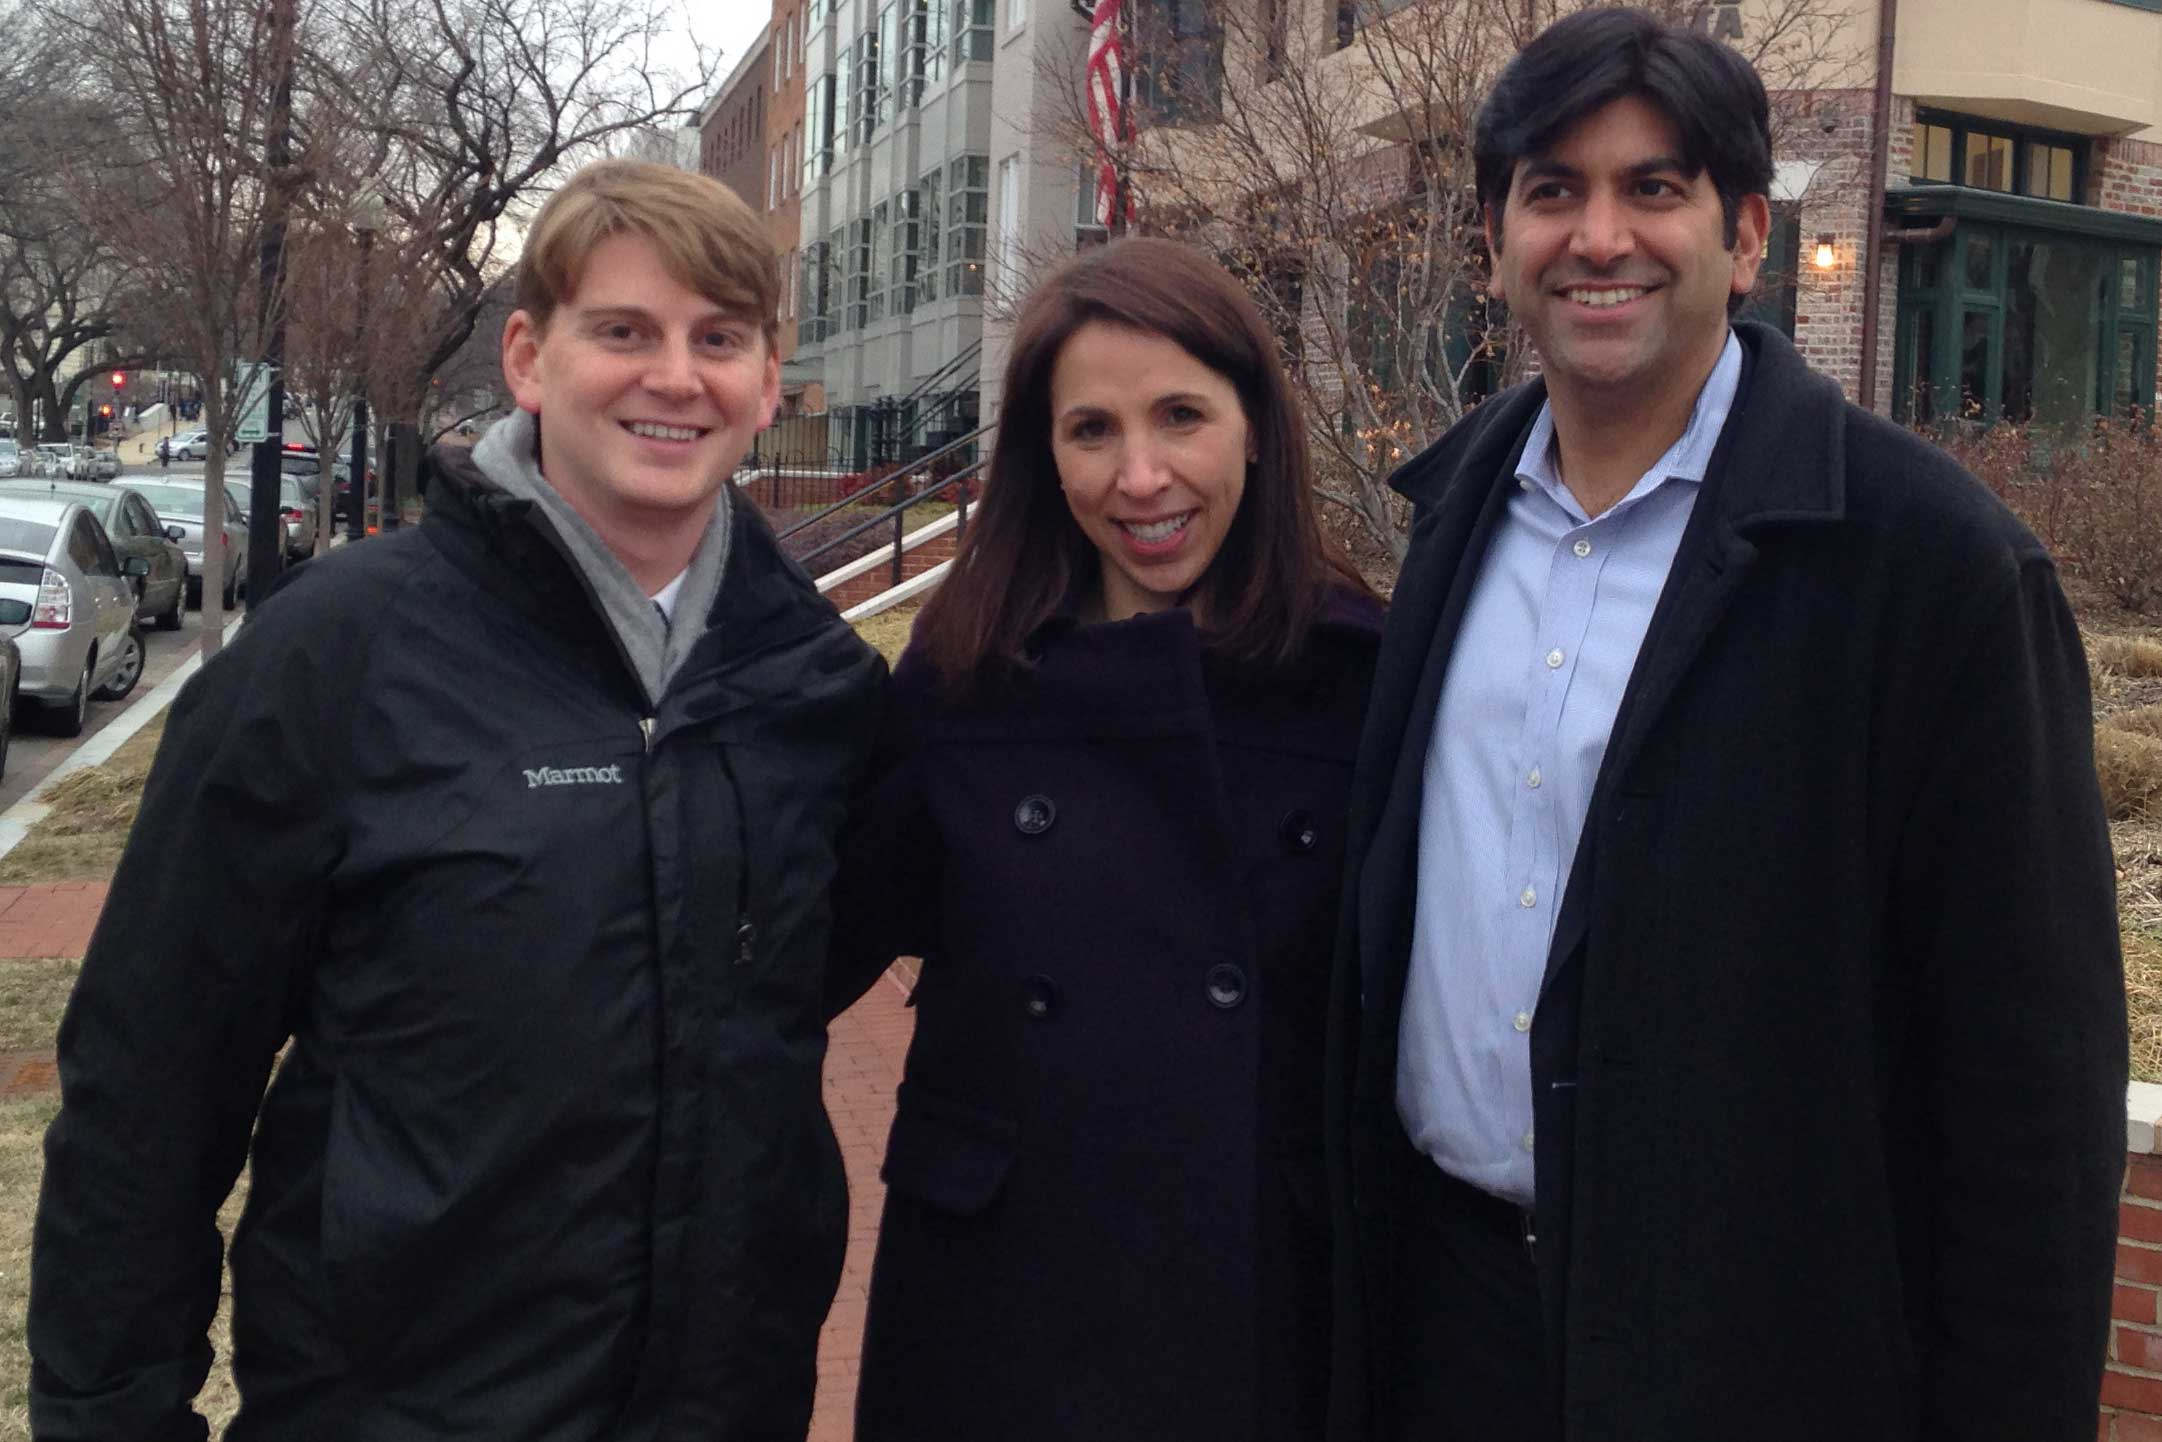 Nate Hundt, Leighanne Levensaler and Aneesh Chopra in Washington